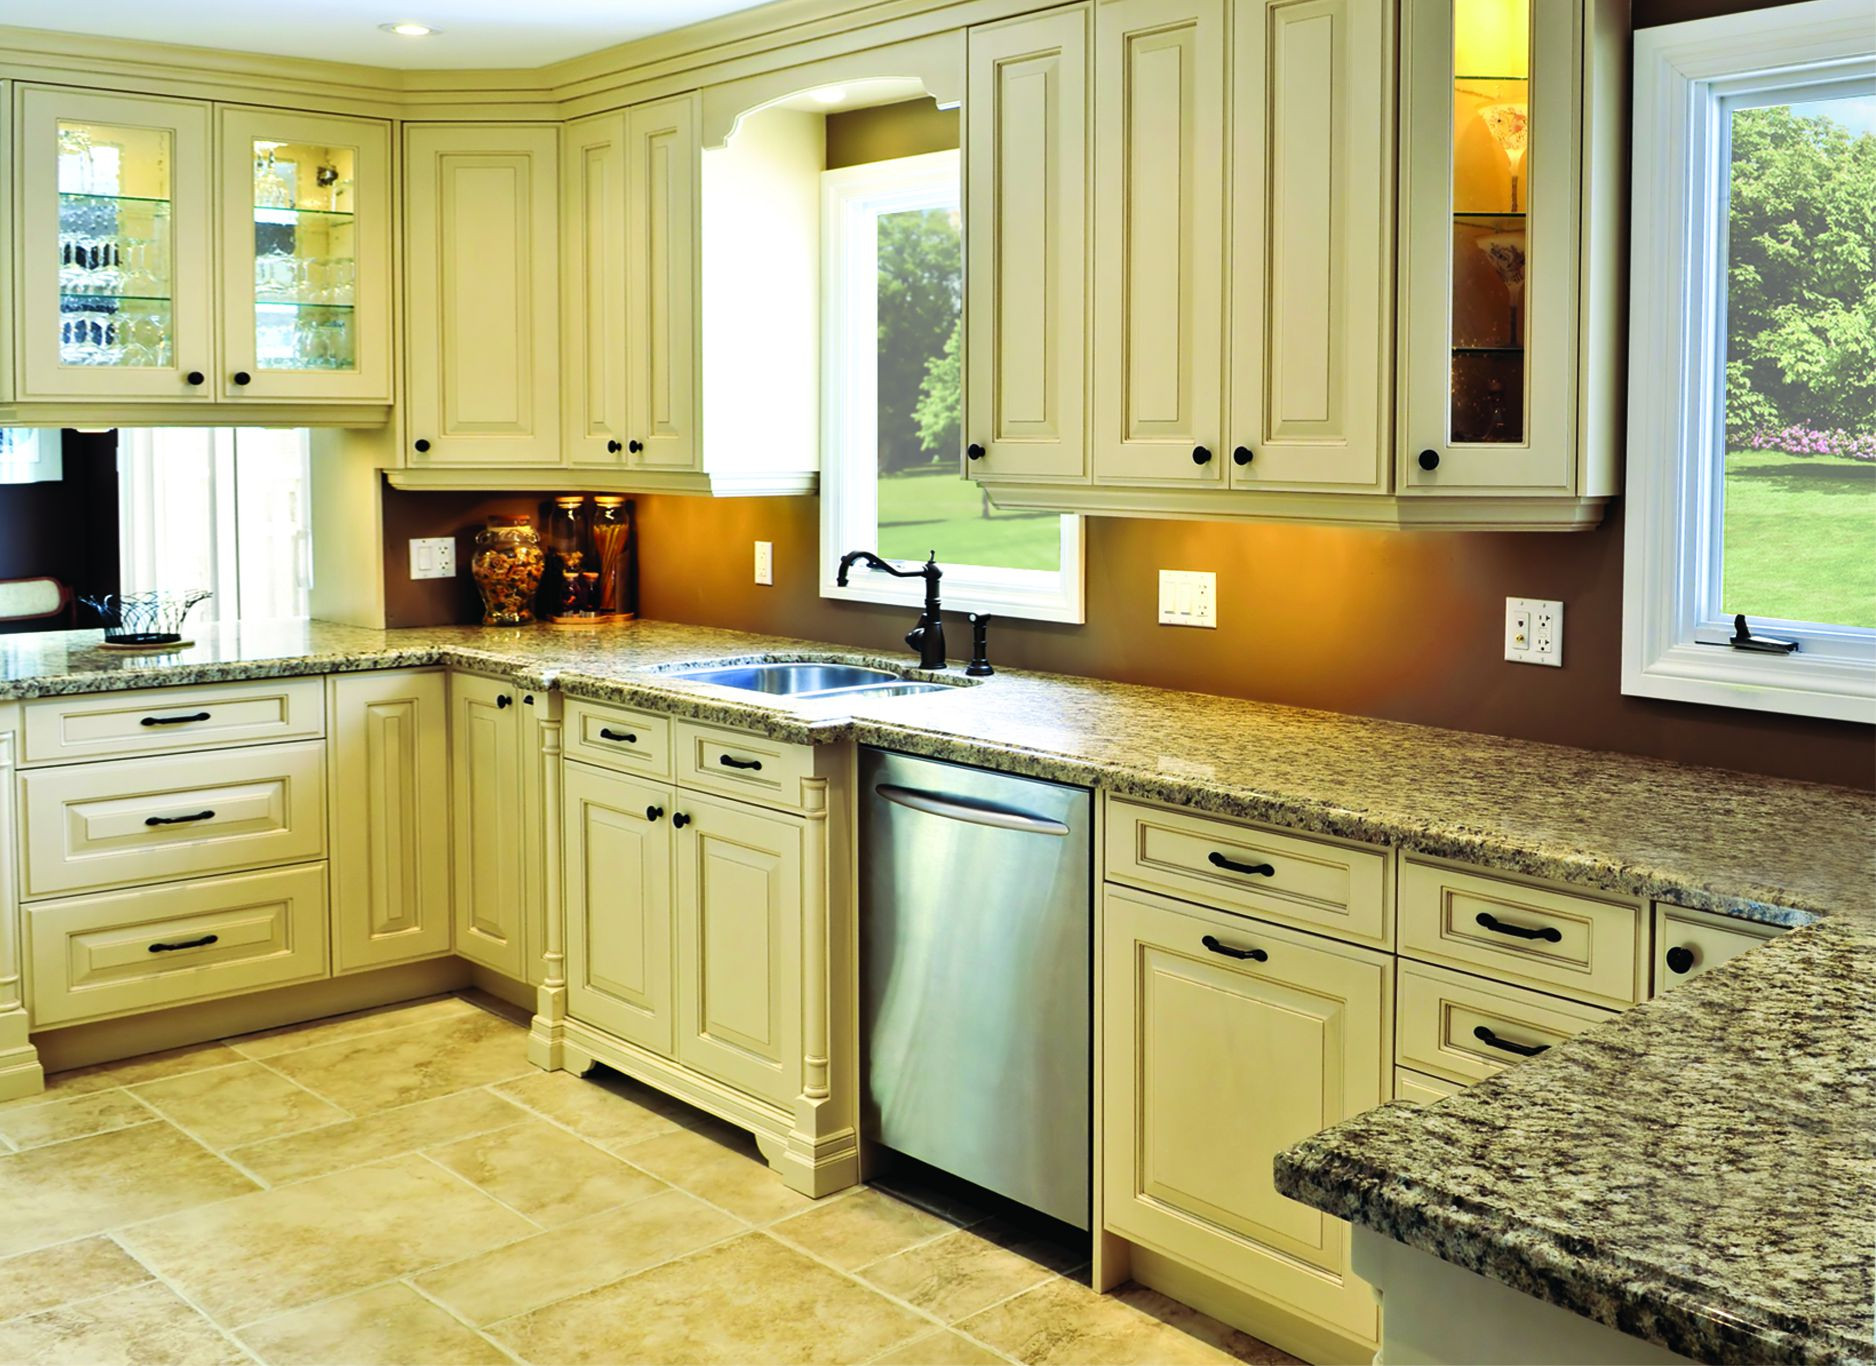 Best ideas about Remodeling Kitchen Ideas . Save or Pin Some Kitchen Remodeling Ideas To Increase The Value Now.